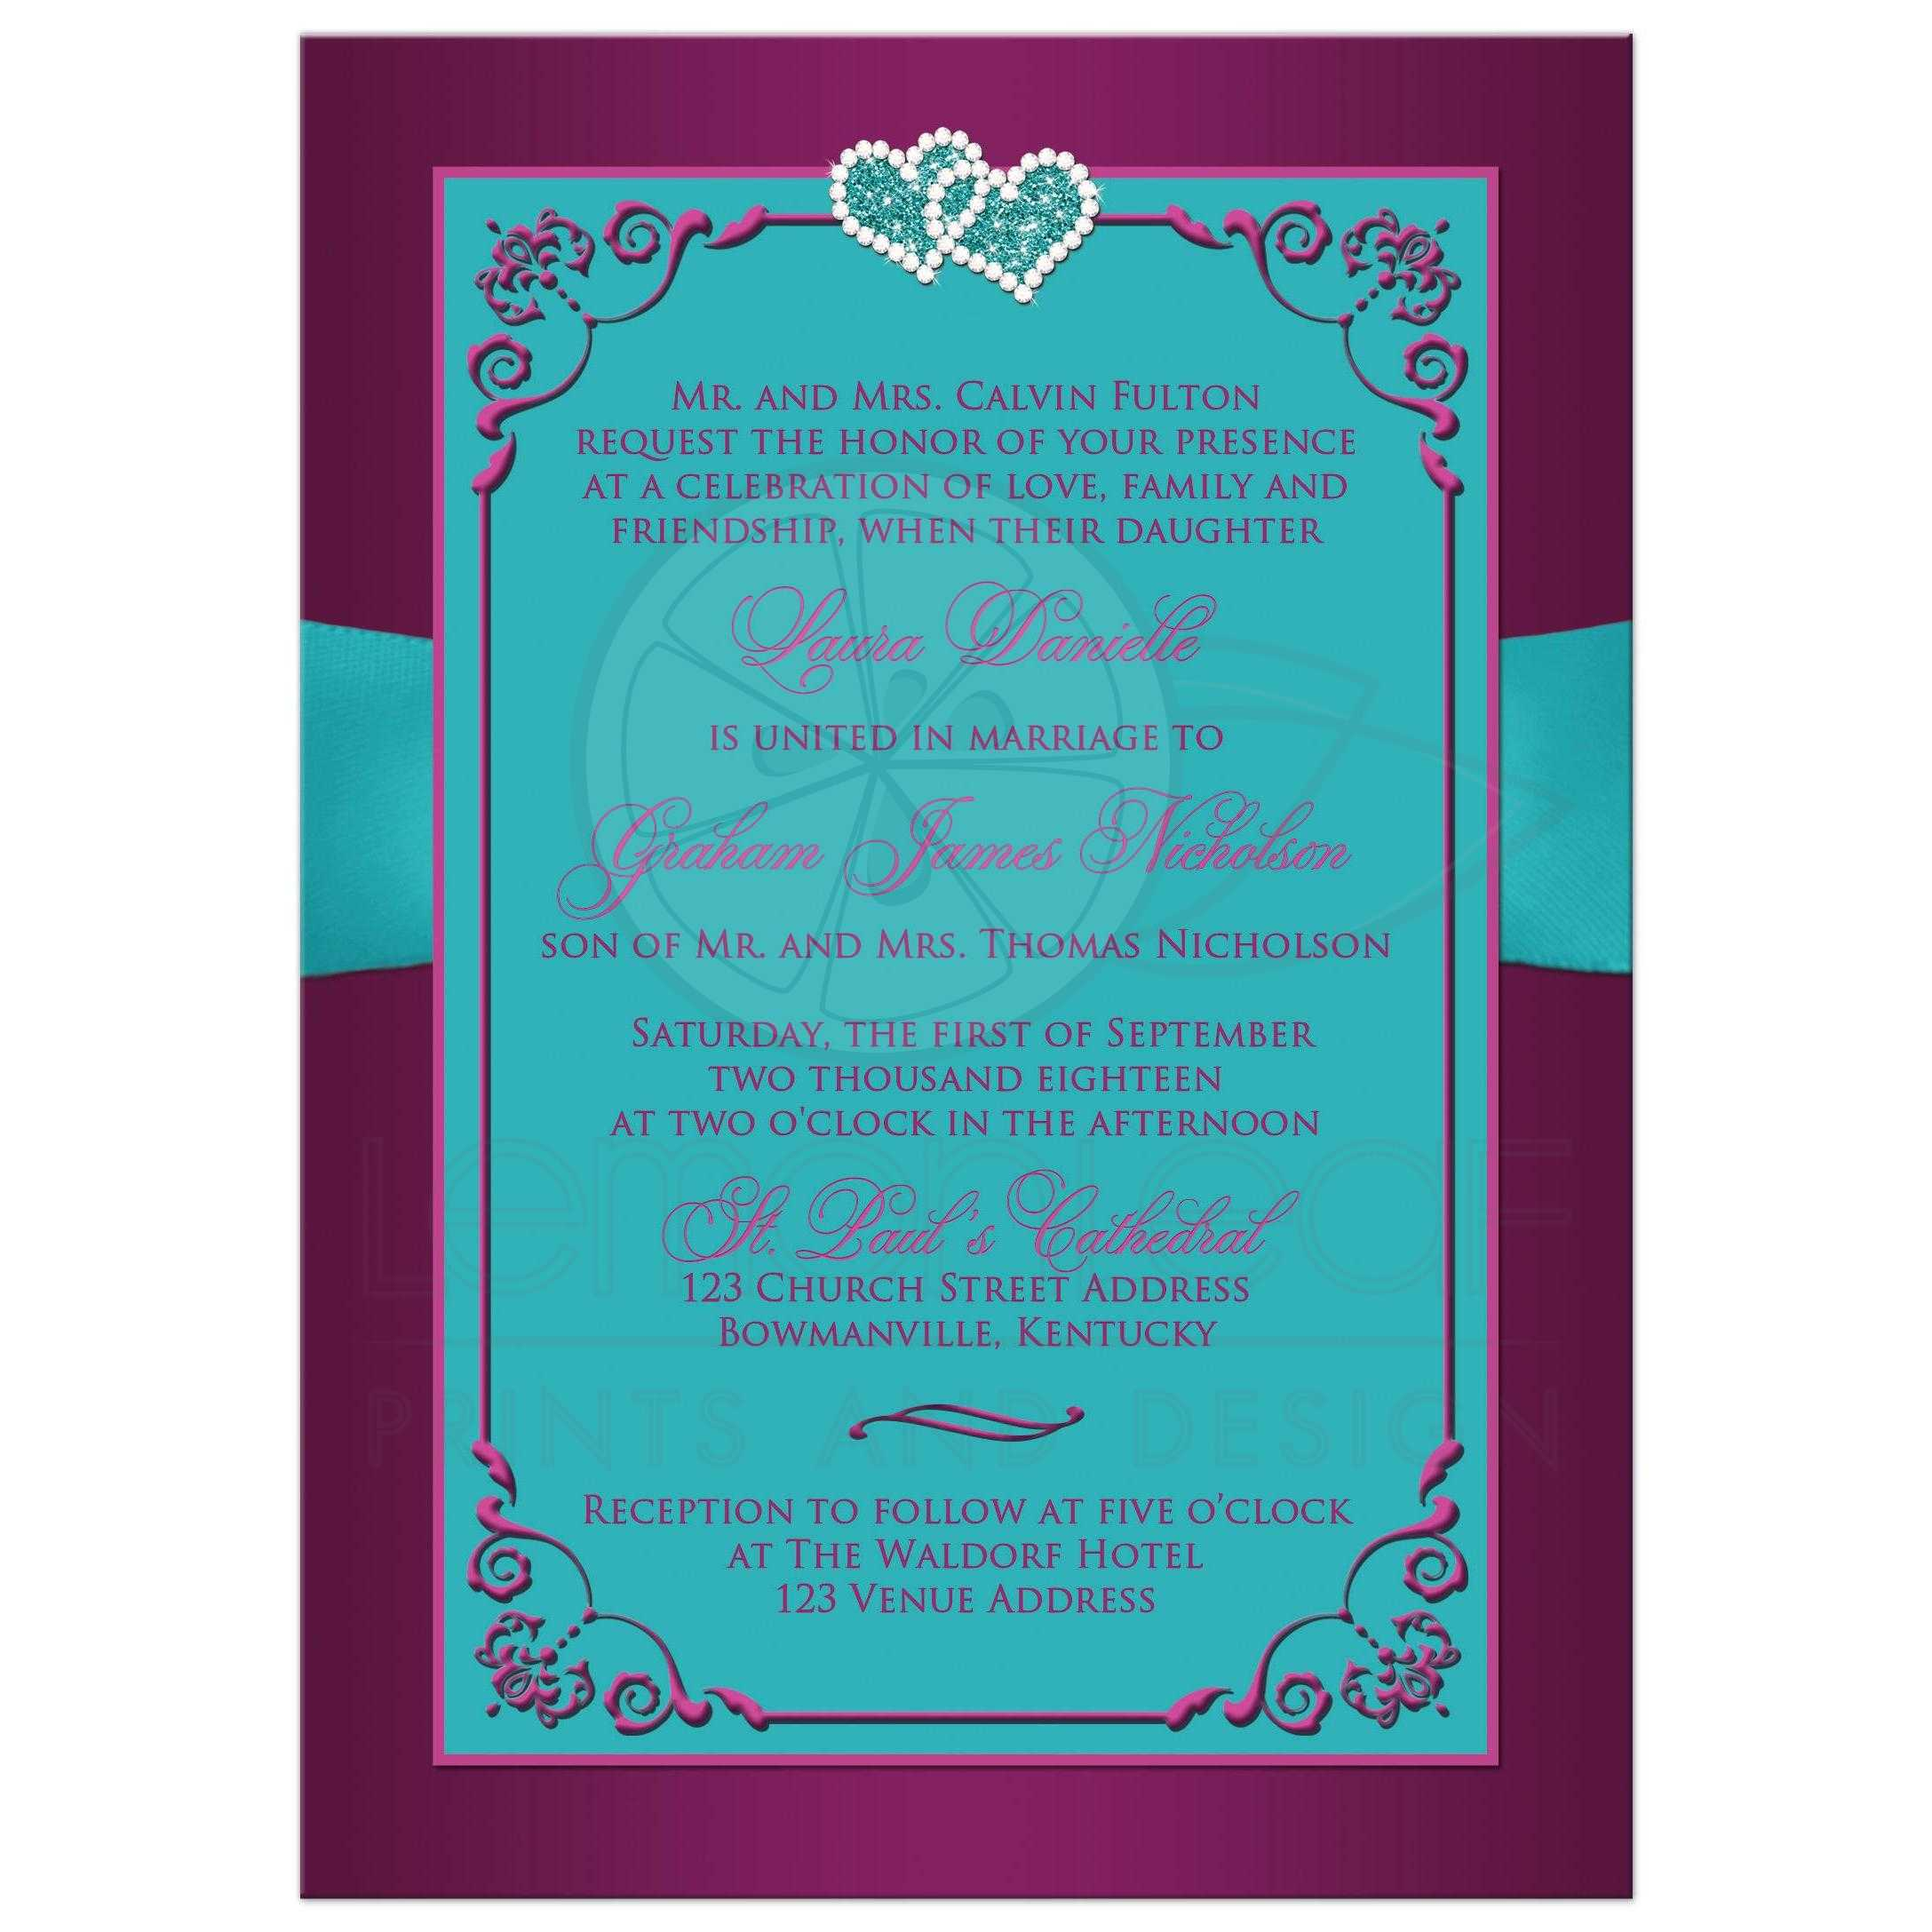 Wedding Invitation | Teal, Plum, Magenta Floral | PRINTED Ribbon ...